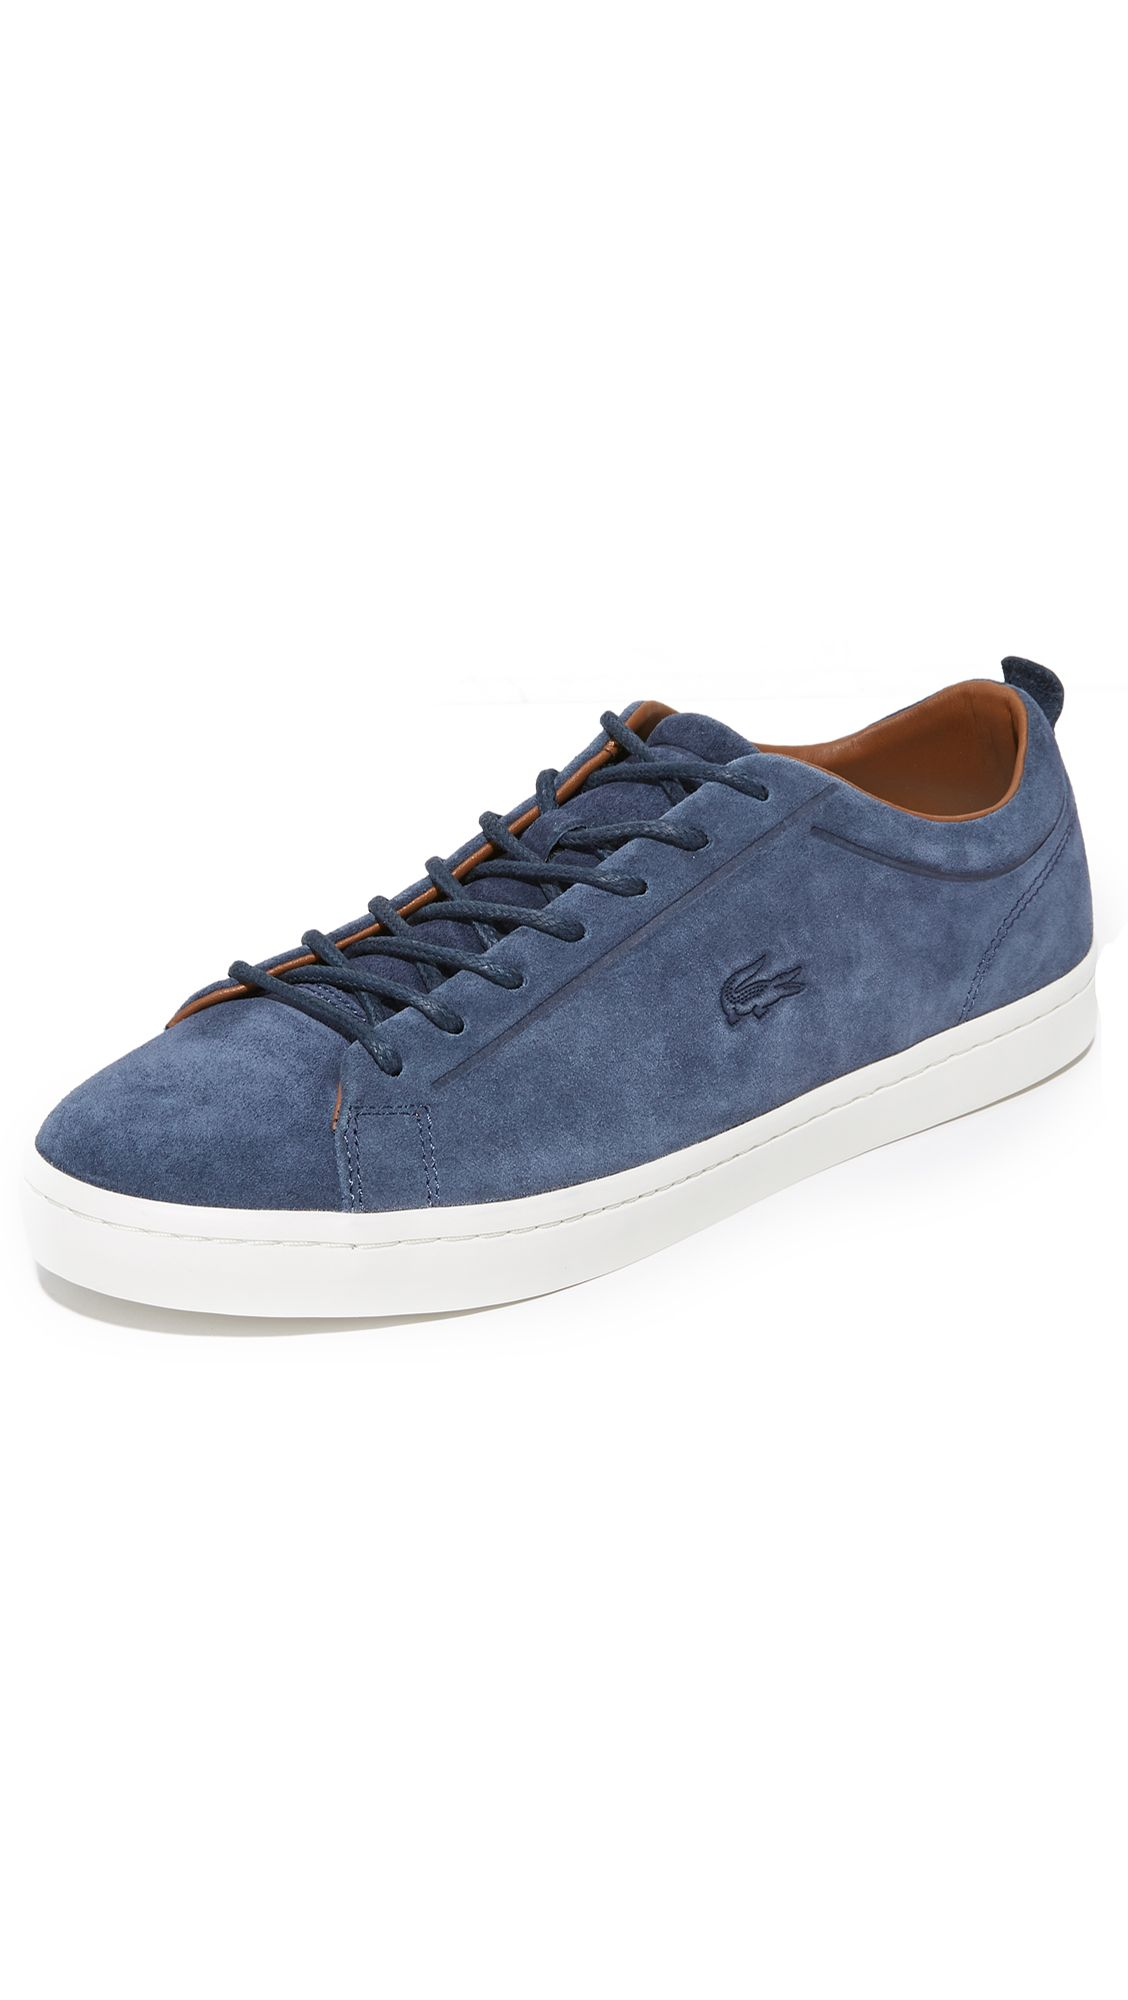 241a7d608 LACOSTE Straightset Suede Sneakers.  lacoste  shoes  sneakers ...